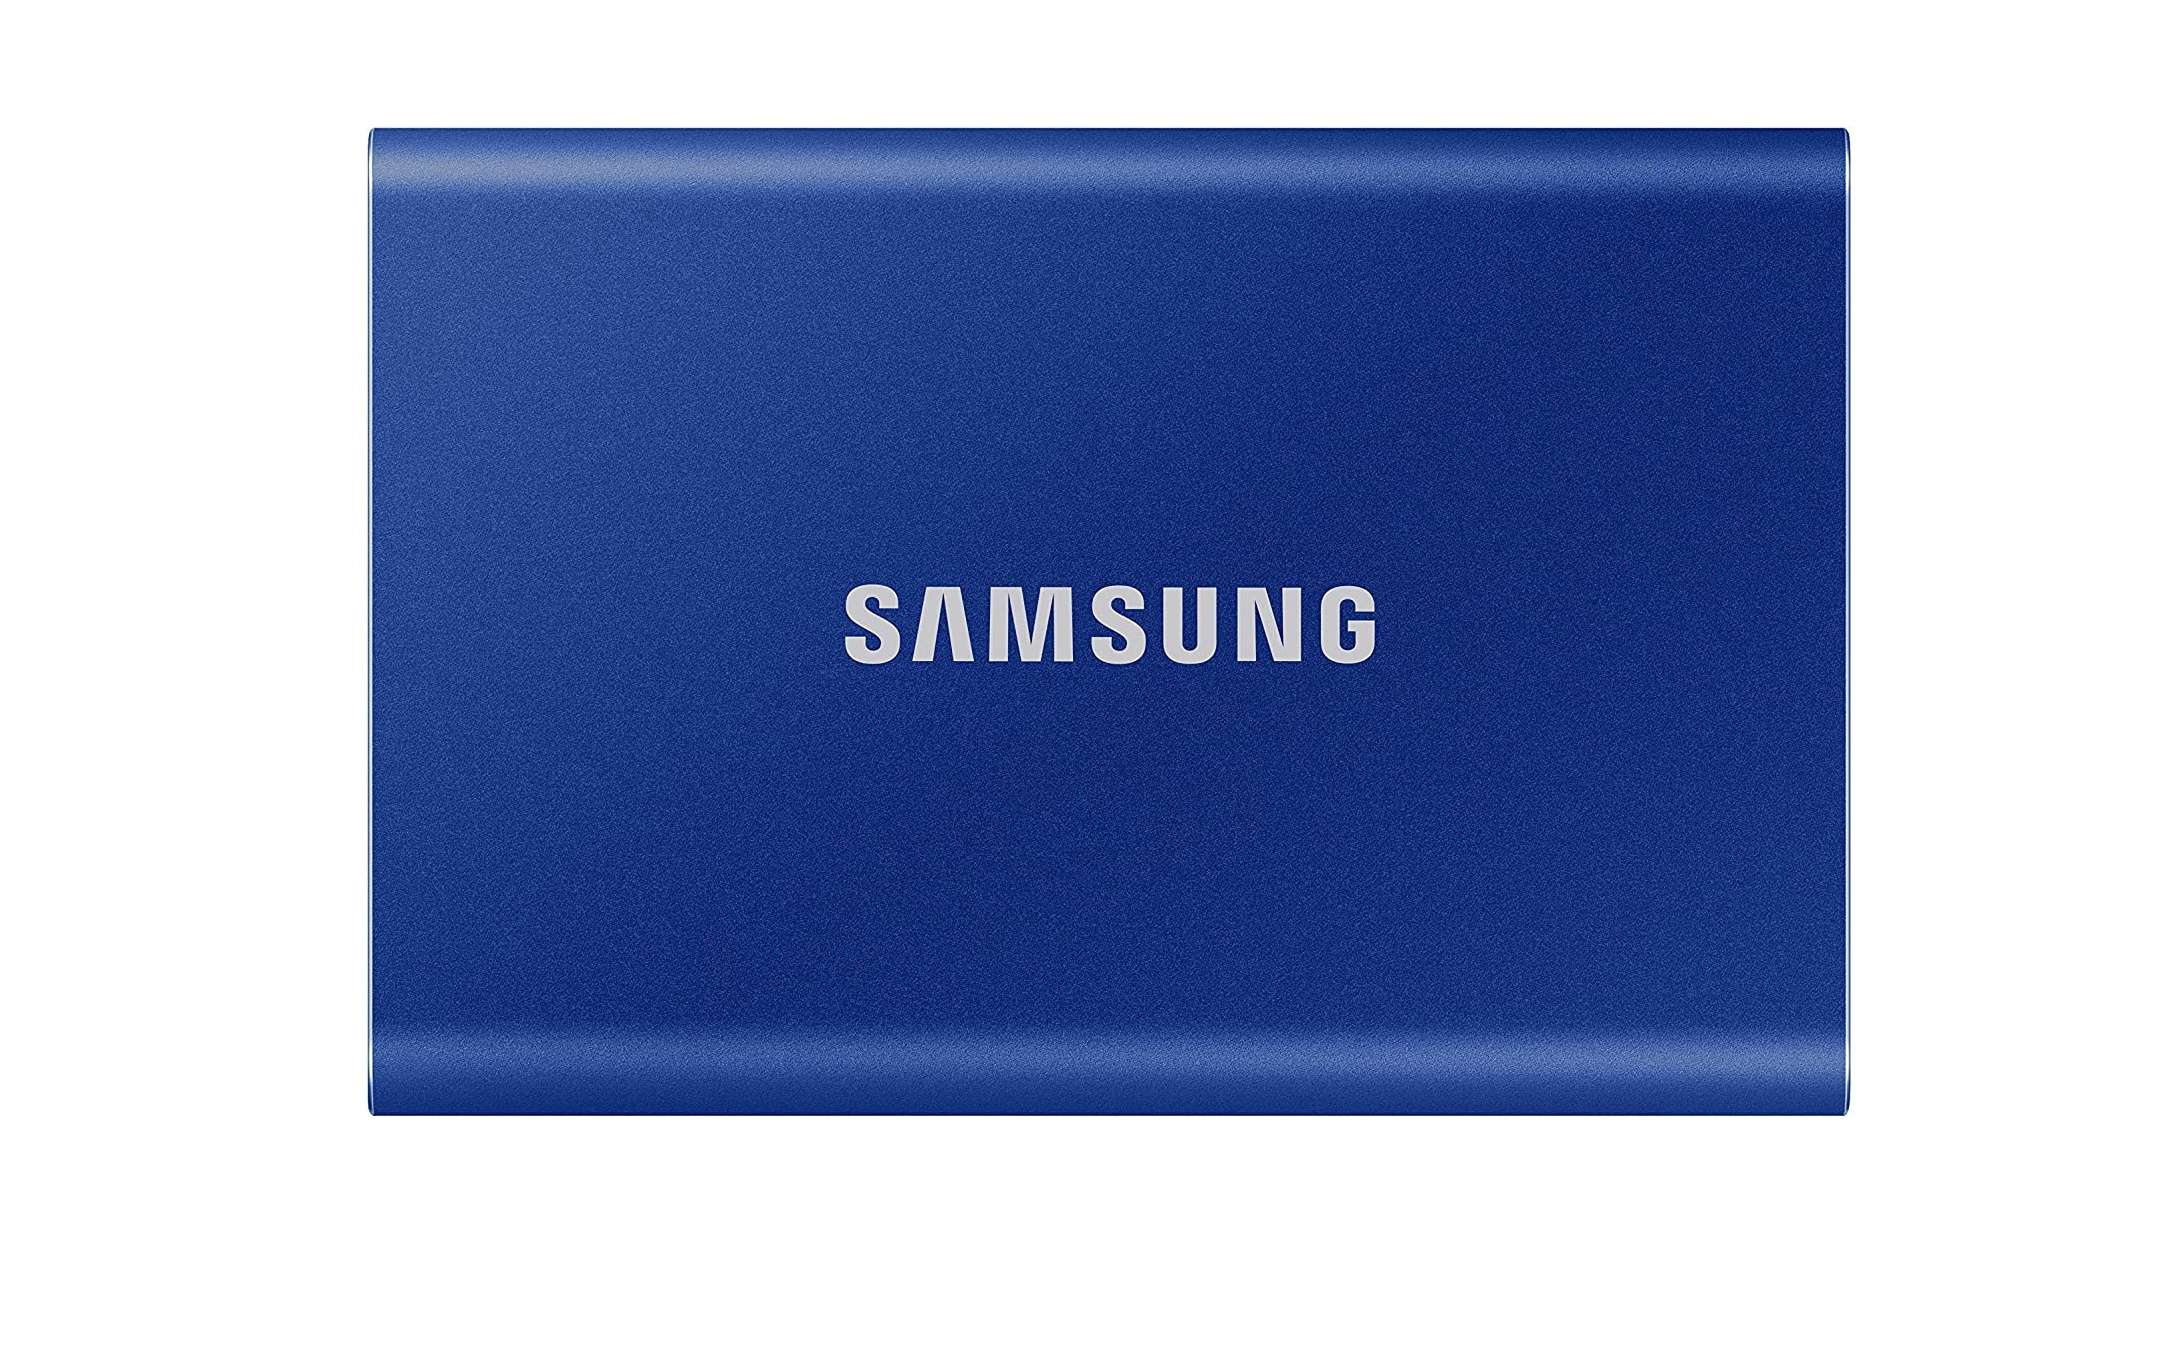 Samsung Portable SSD T7 500GB for less than 100 €